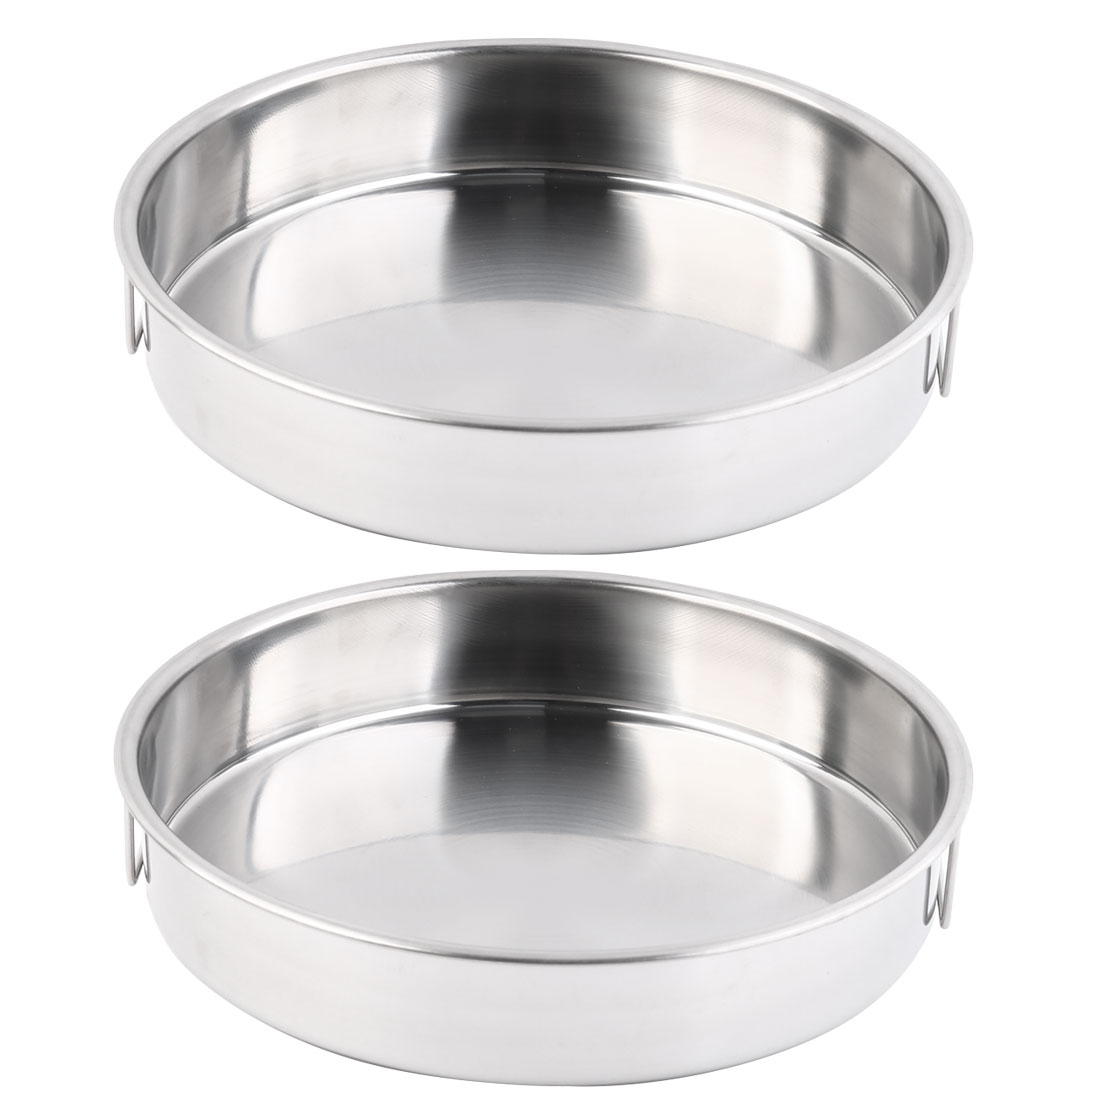 Kitchen Stainless Steel Dinner Soup Rice Vegetable Food Tableware Bowl Dish 2pcs